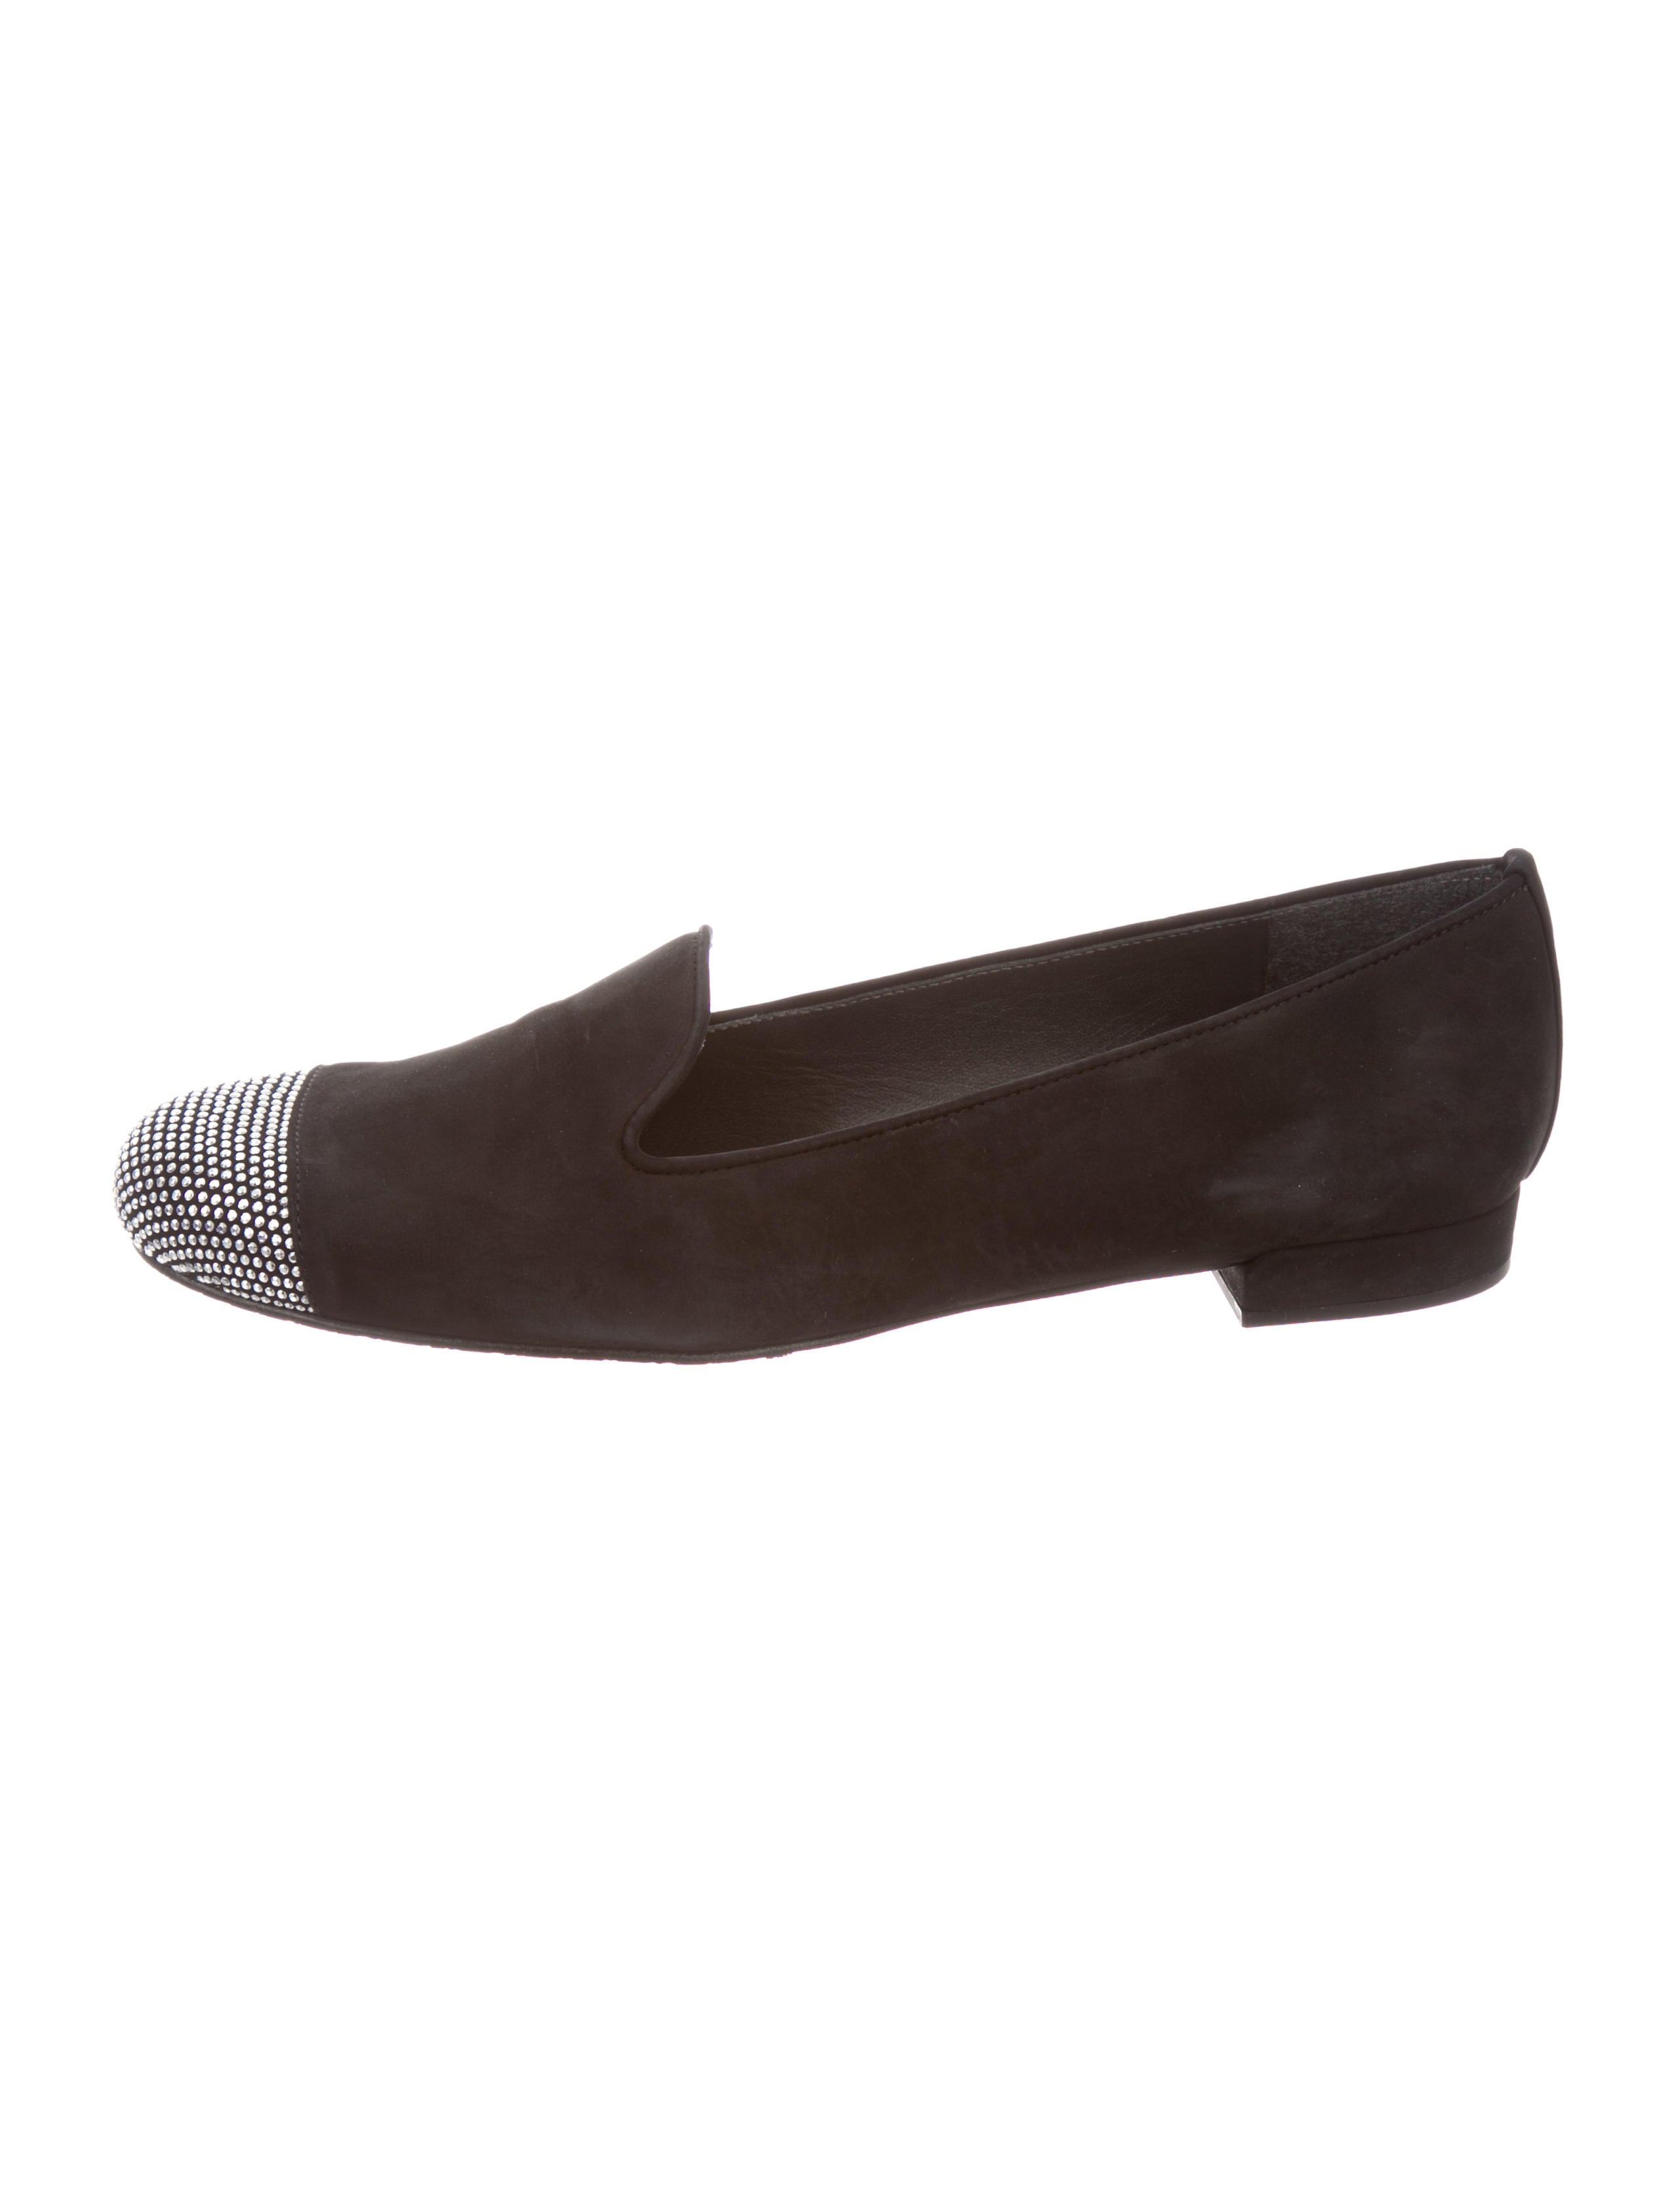 free shipping pay with paypal Stuart Weitzman stud embelished loafers high quality for sale 7DK2nkYb